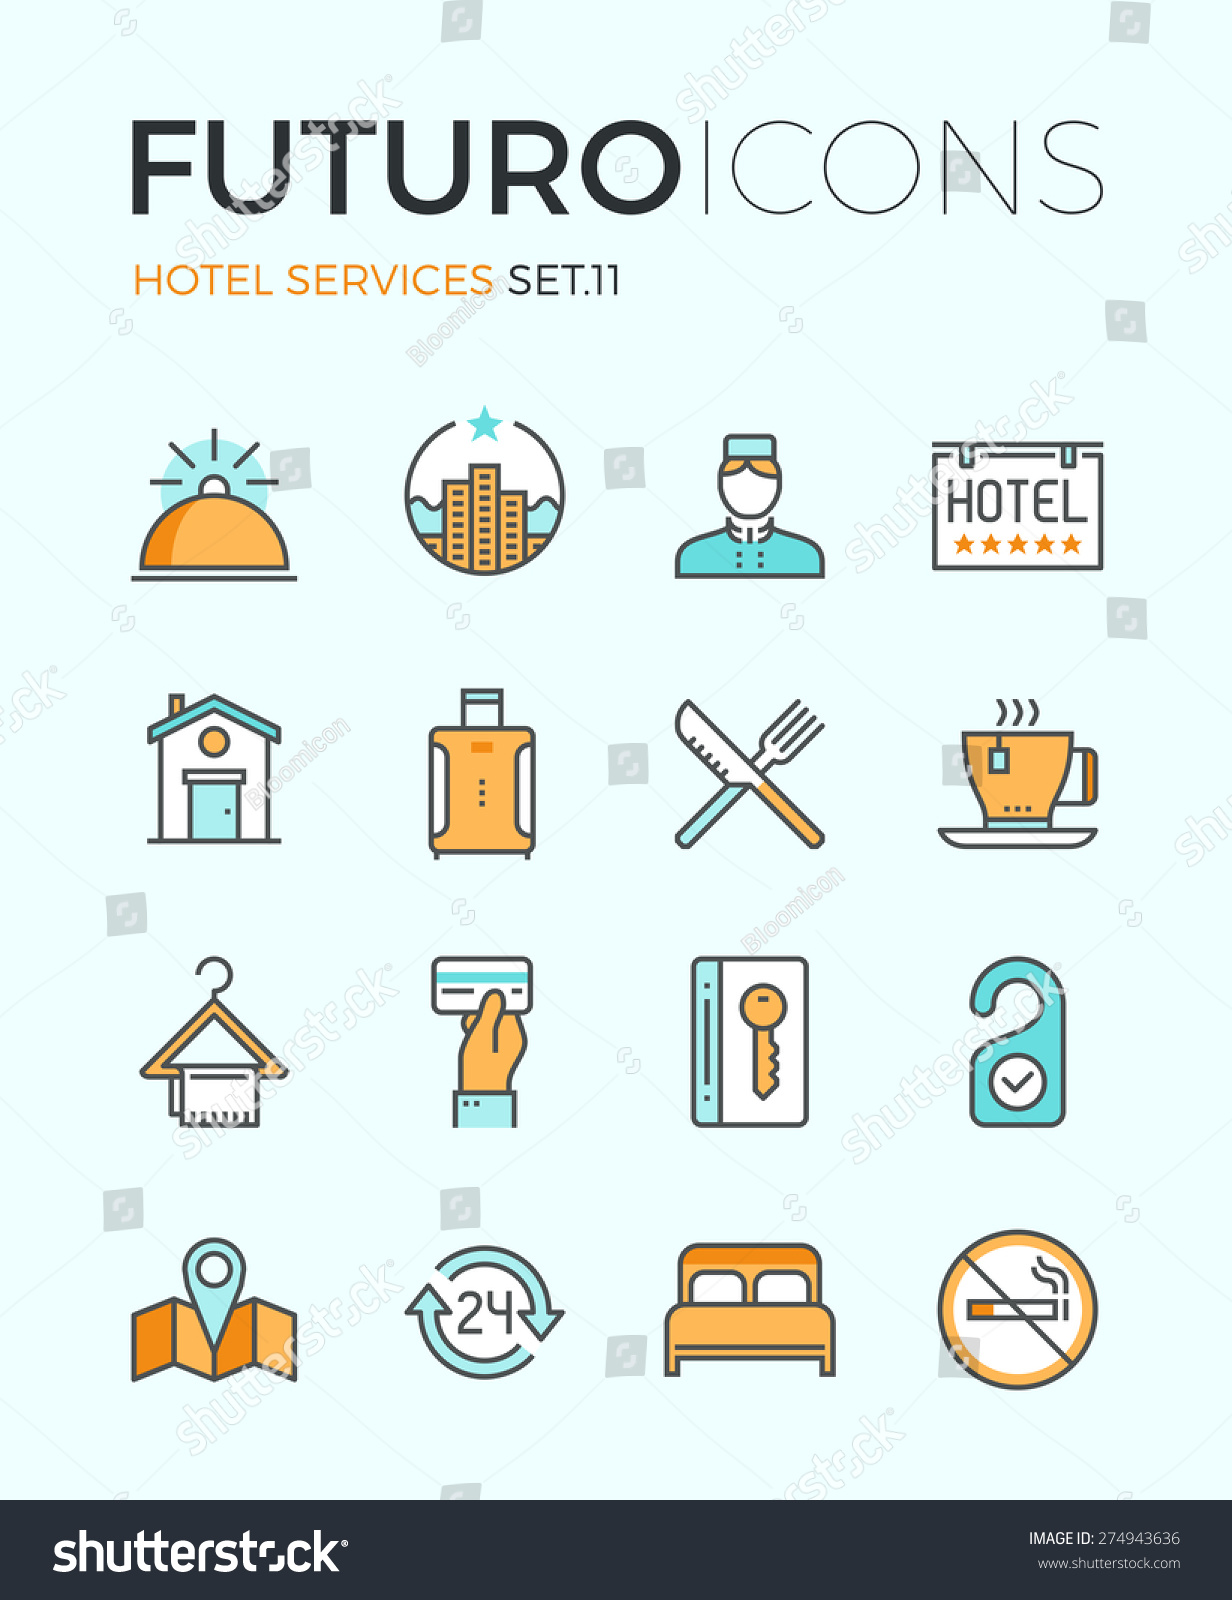 Facilities Service Icon Images